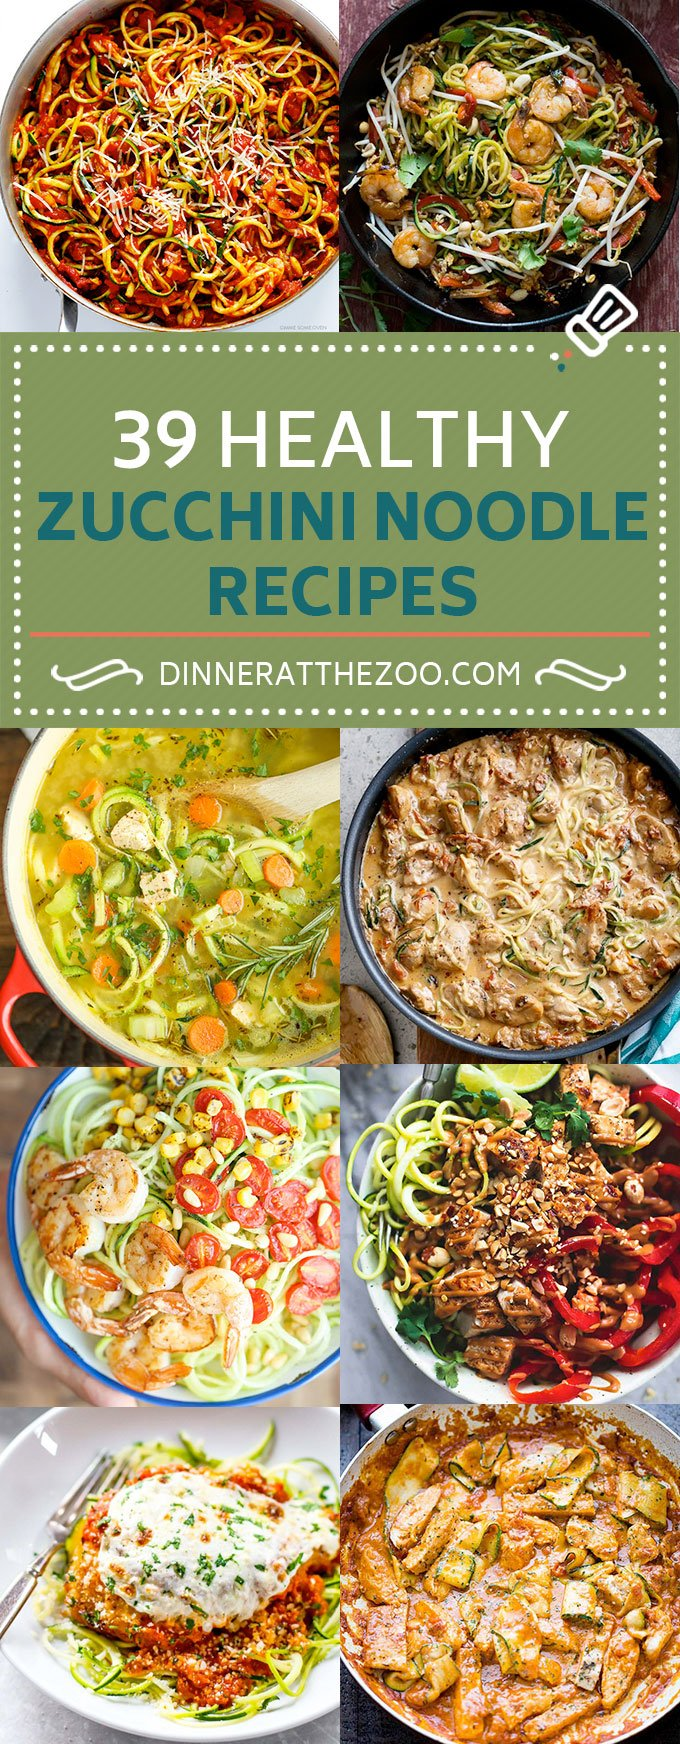 39 Healthy Zucchini Noodle Recipes | Zoodle Recipes | Low Carb Recipes #zoodles #zucchininoodles #lowcarb #keto #dinner #dinneratthezoo